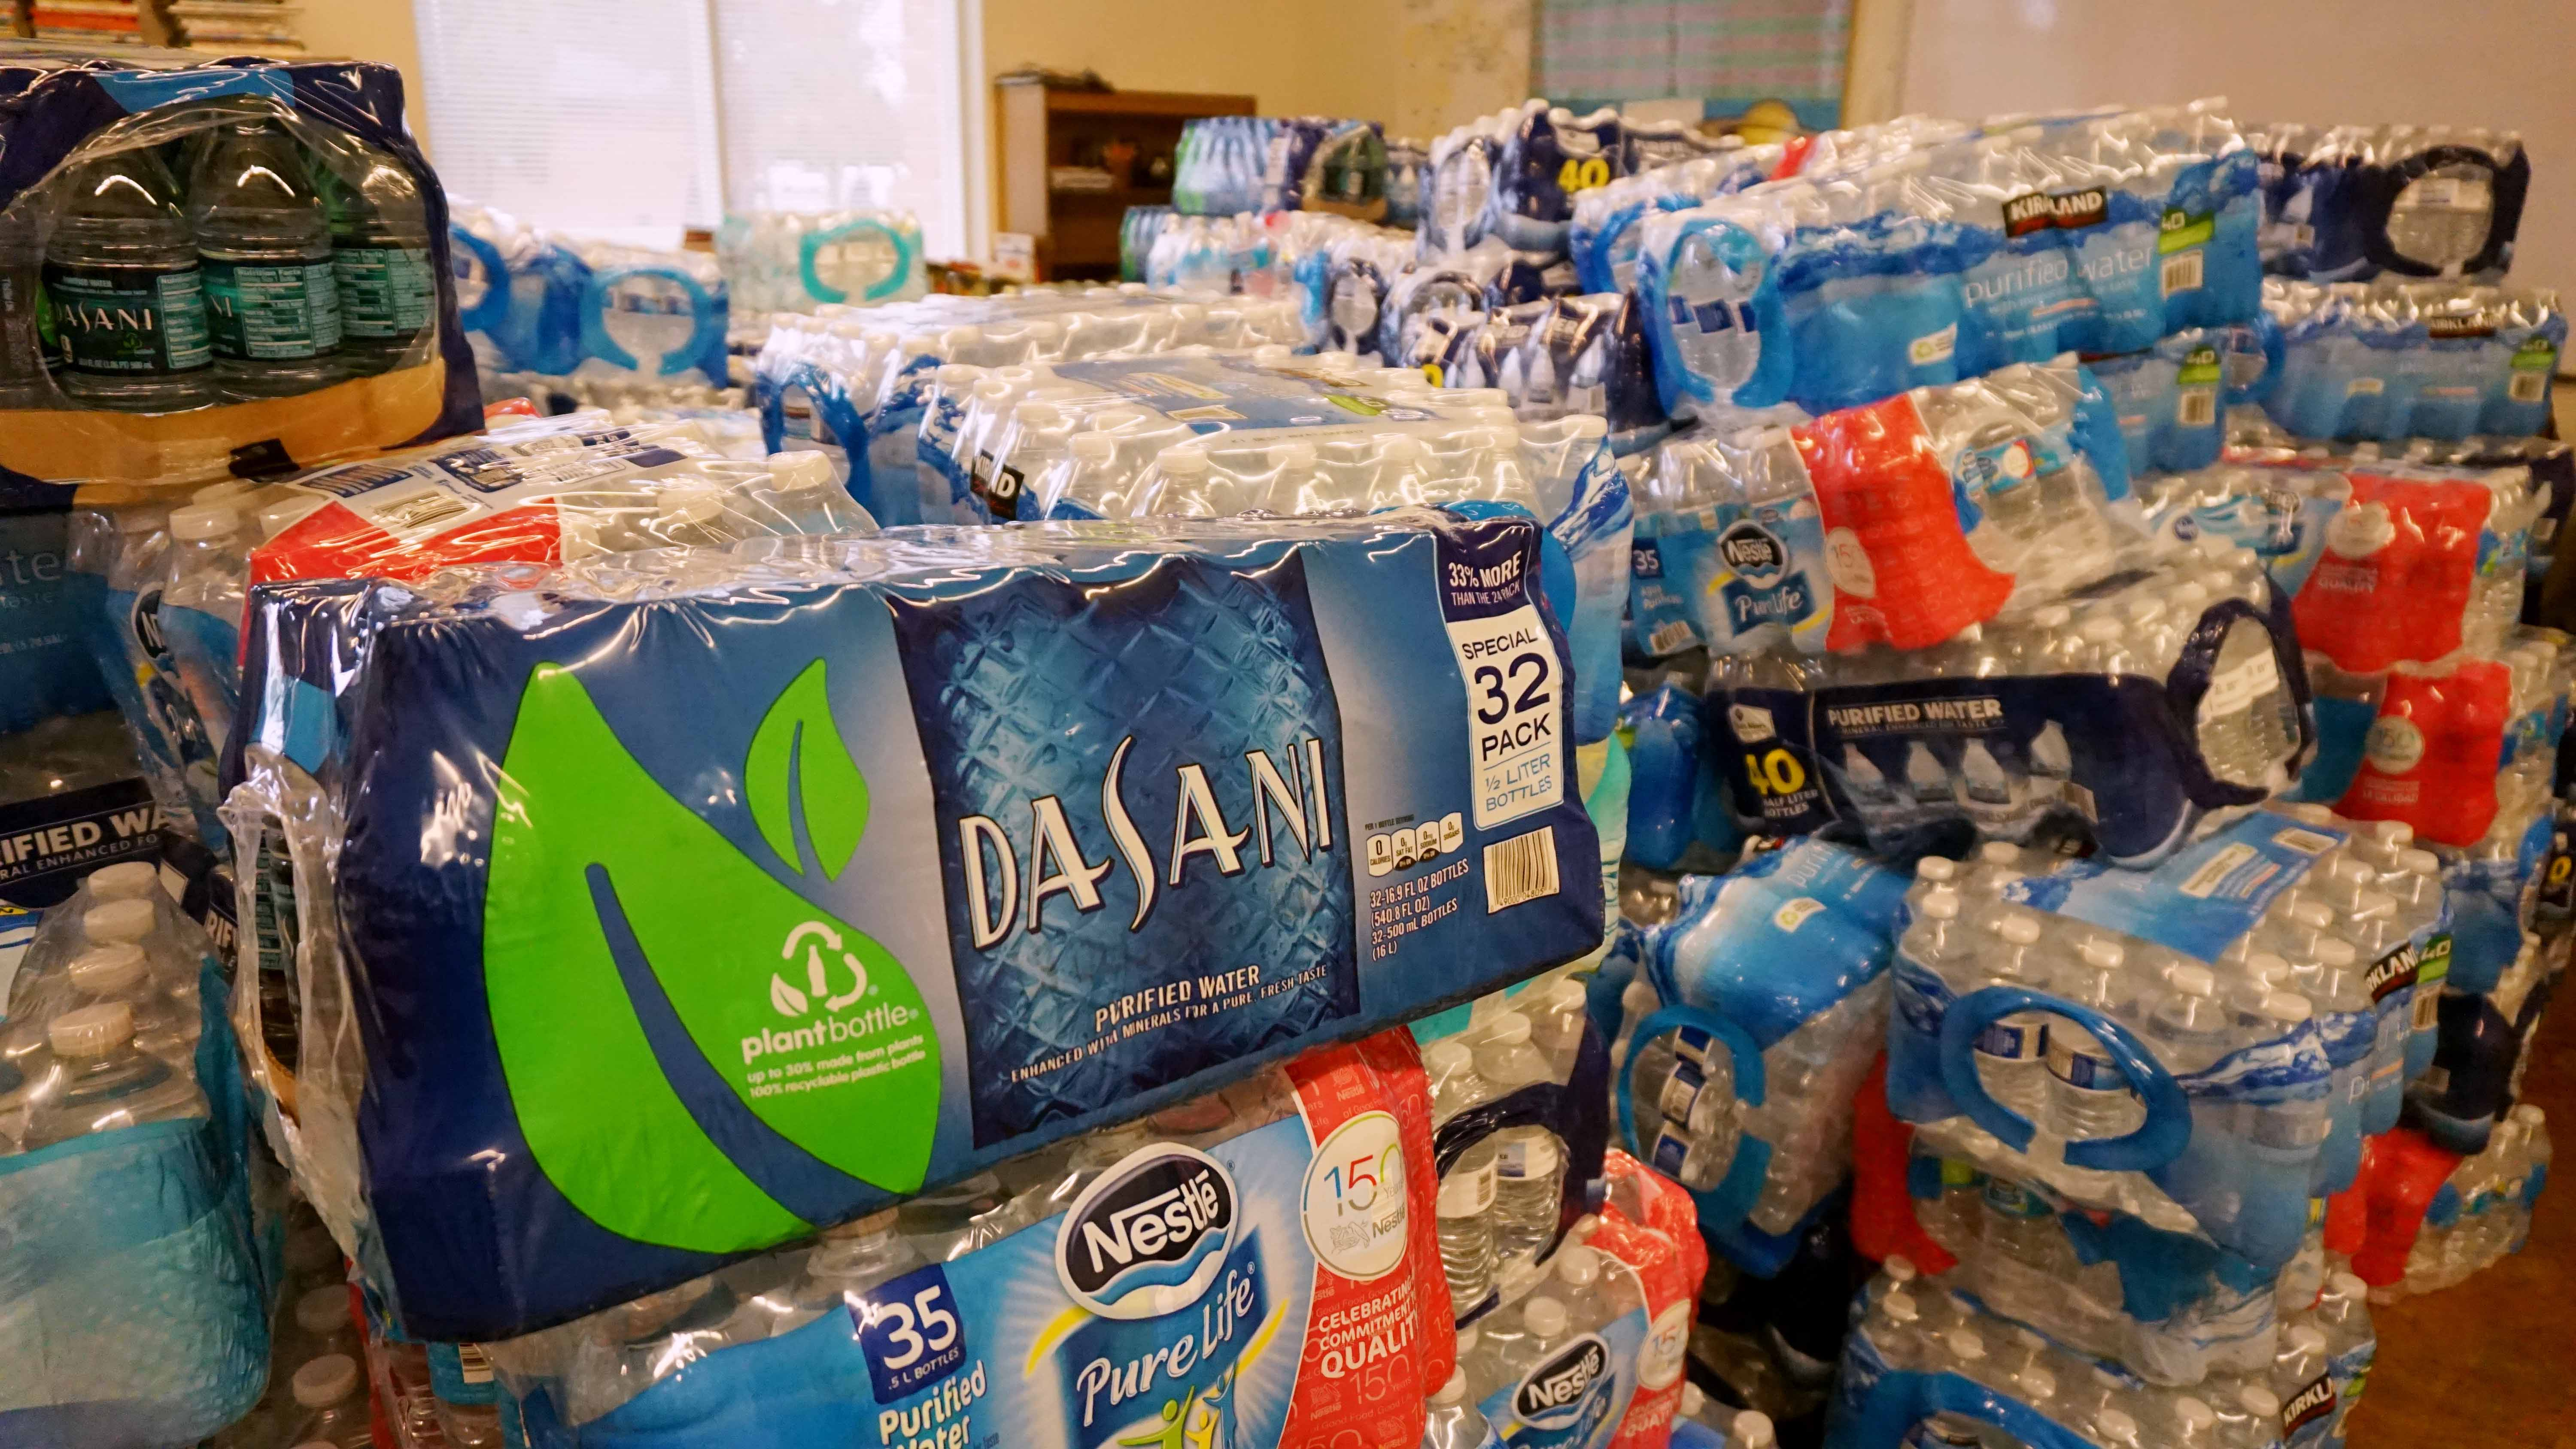 A pile of bottled water cases in a room inside the Henry J. Hyde Resource Center in Addison, Ill. on Jan. 30.